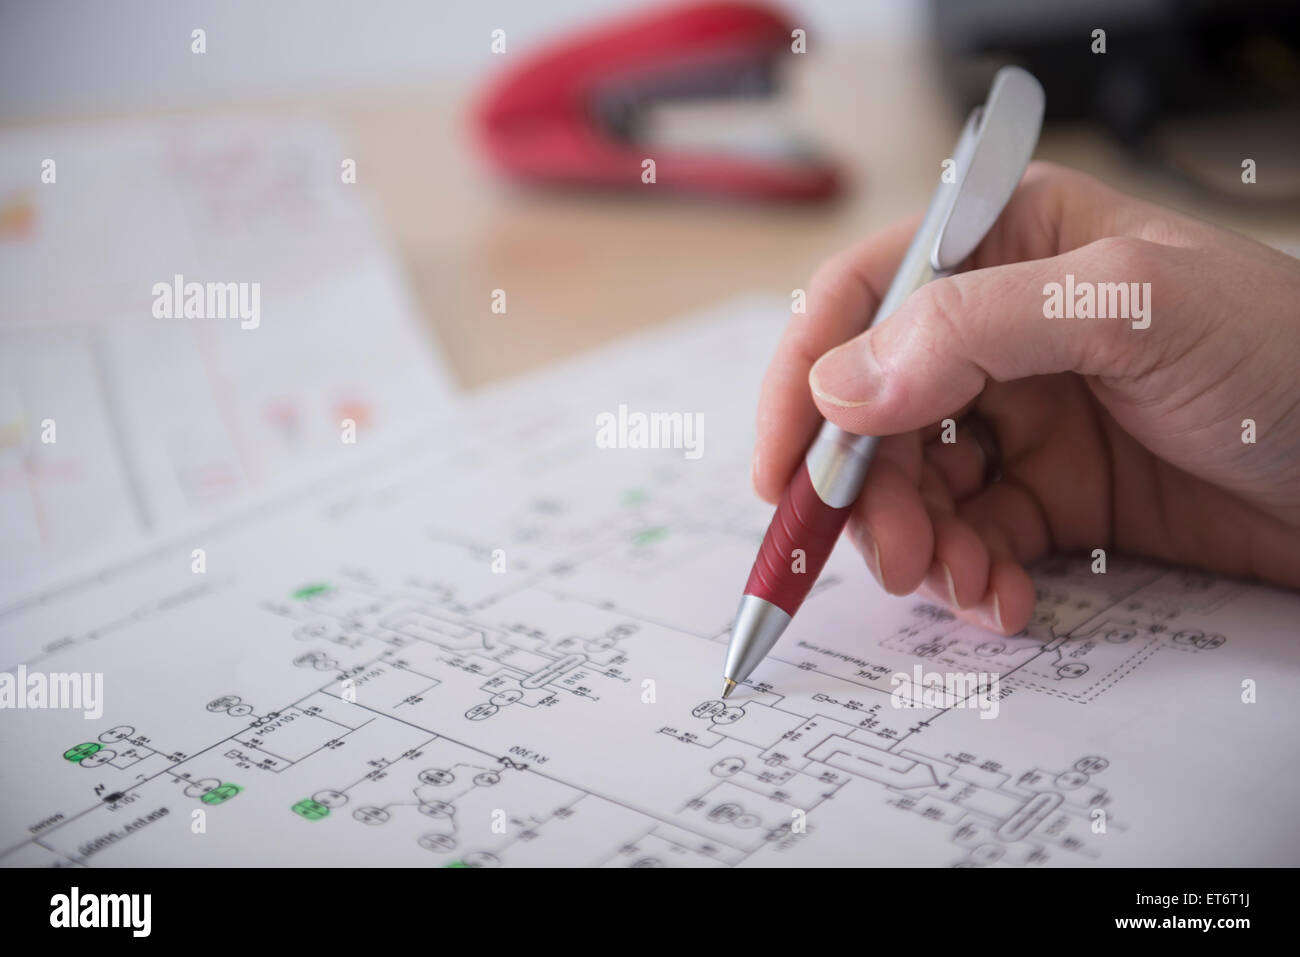 wiring stock photos wiring stock images alamy engineer analysing wiring diagram munich bavaria stock image